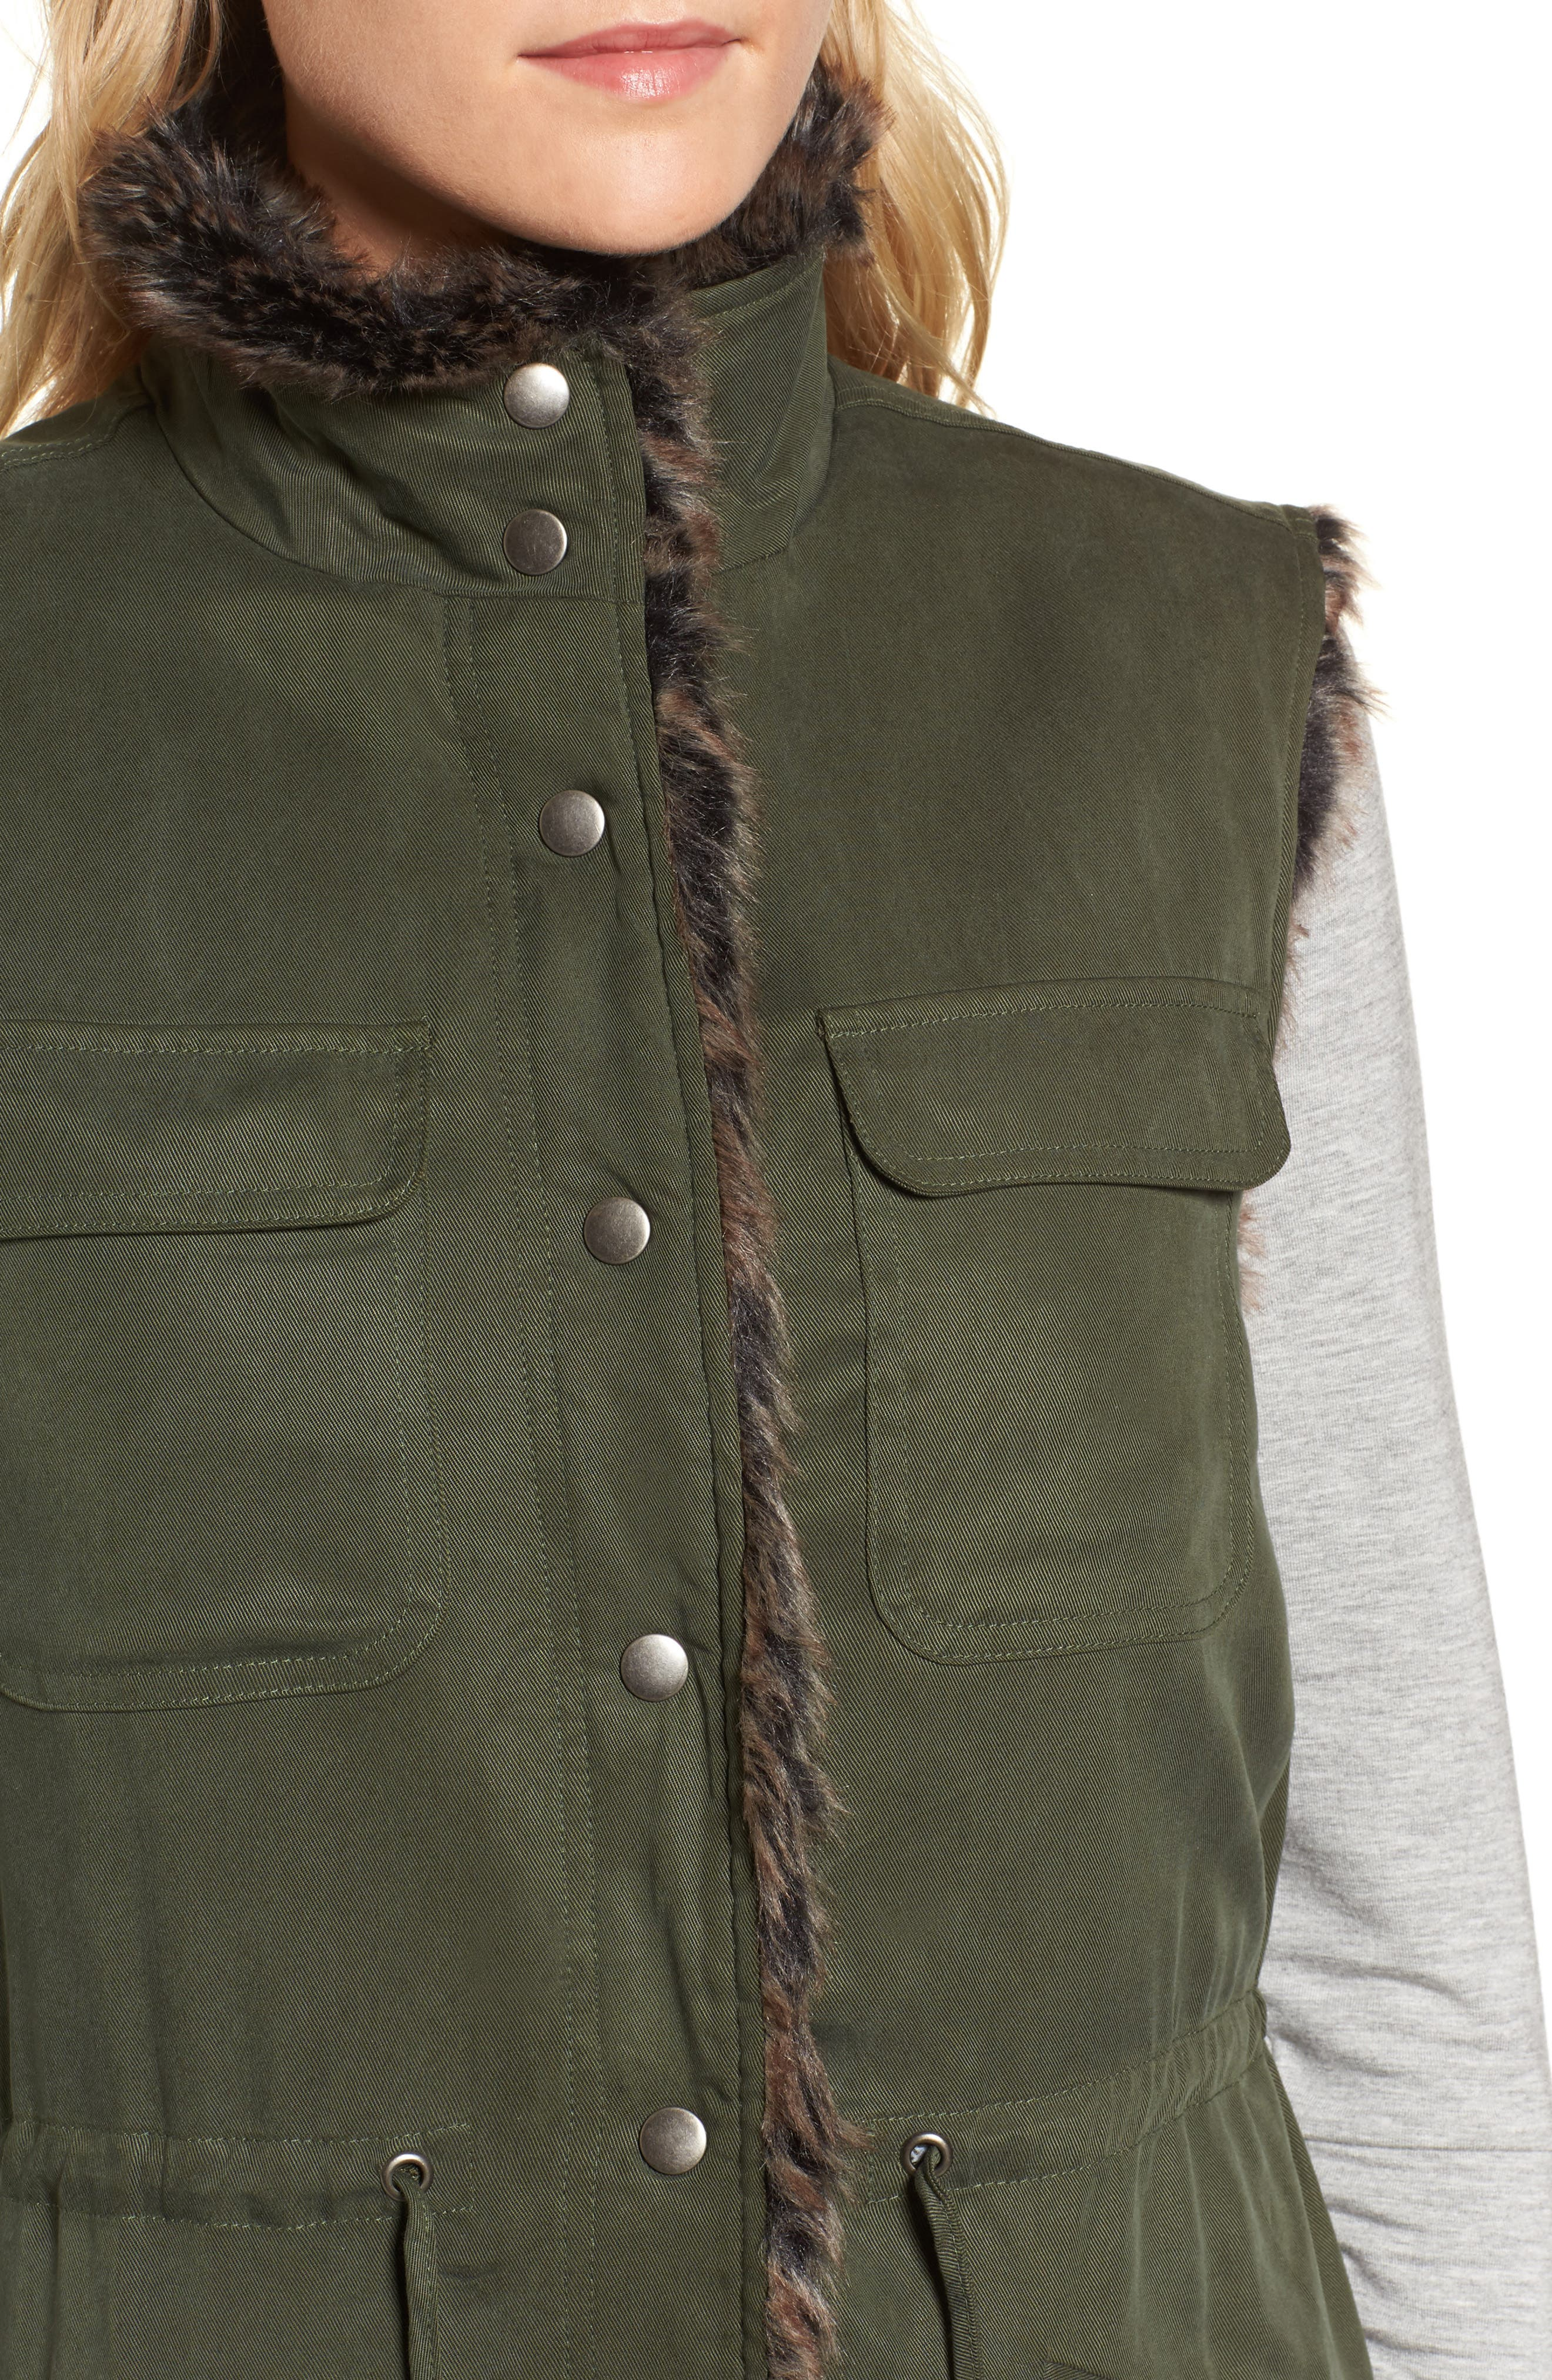 Ashling Faux Fur Lined Utility Vest,                             Alternate thumbnail 4, color,                             ARMY